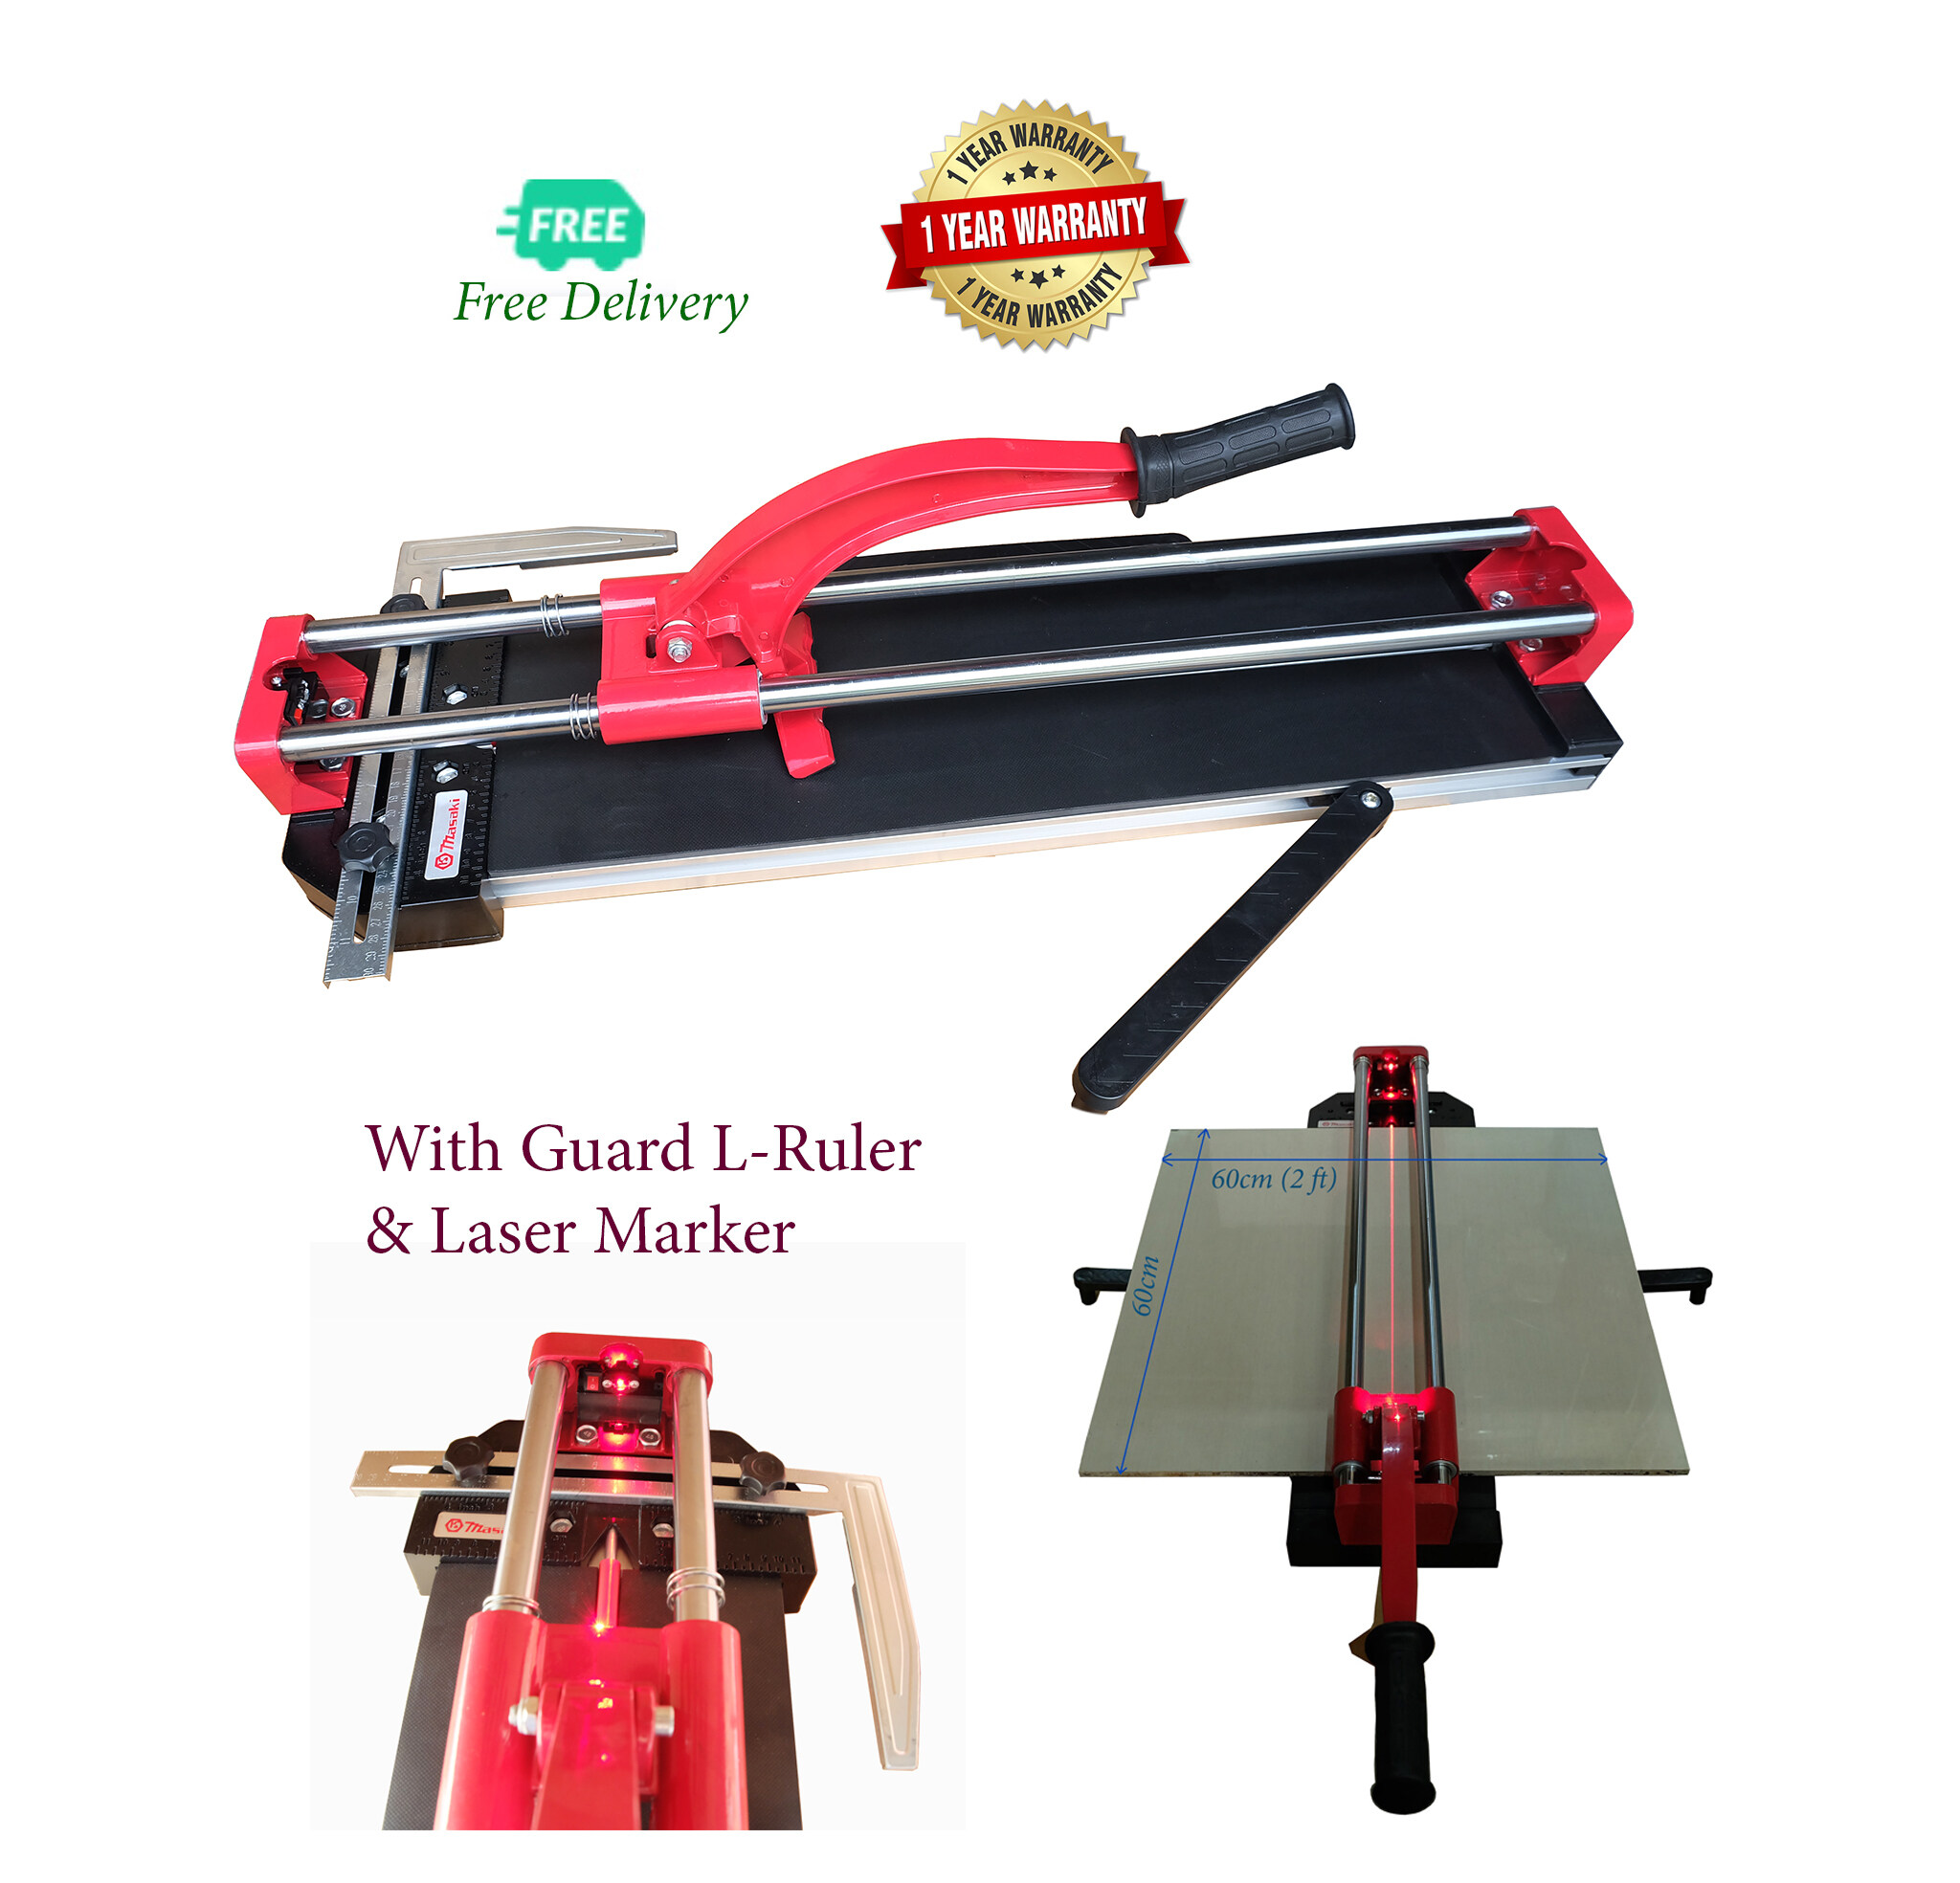 Masaki Advance Tile Cutter Mozaic, Ceramic Cutter 600mm size with Infra Red and Ruler Guider